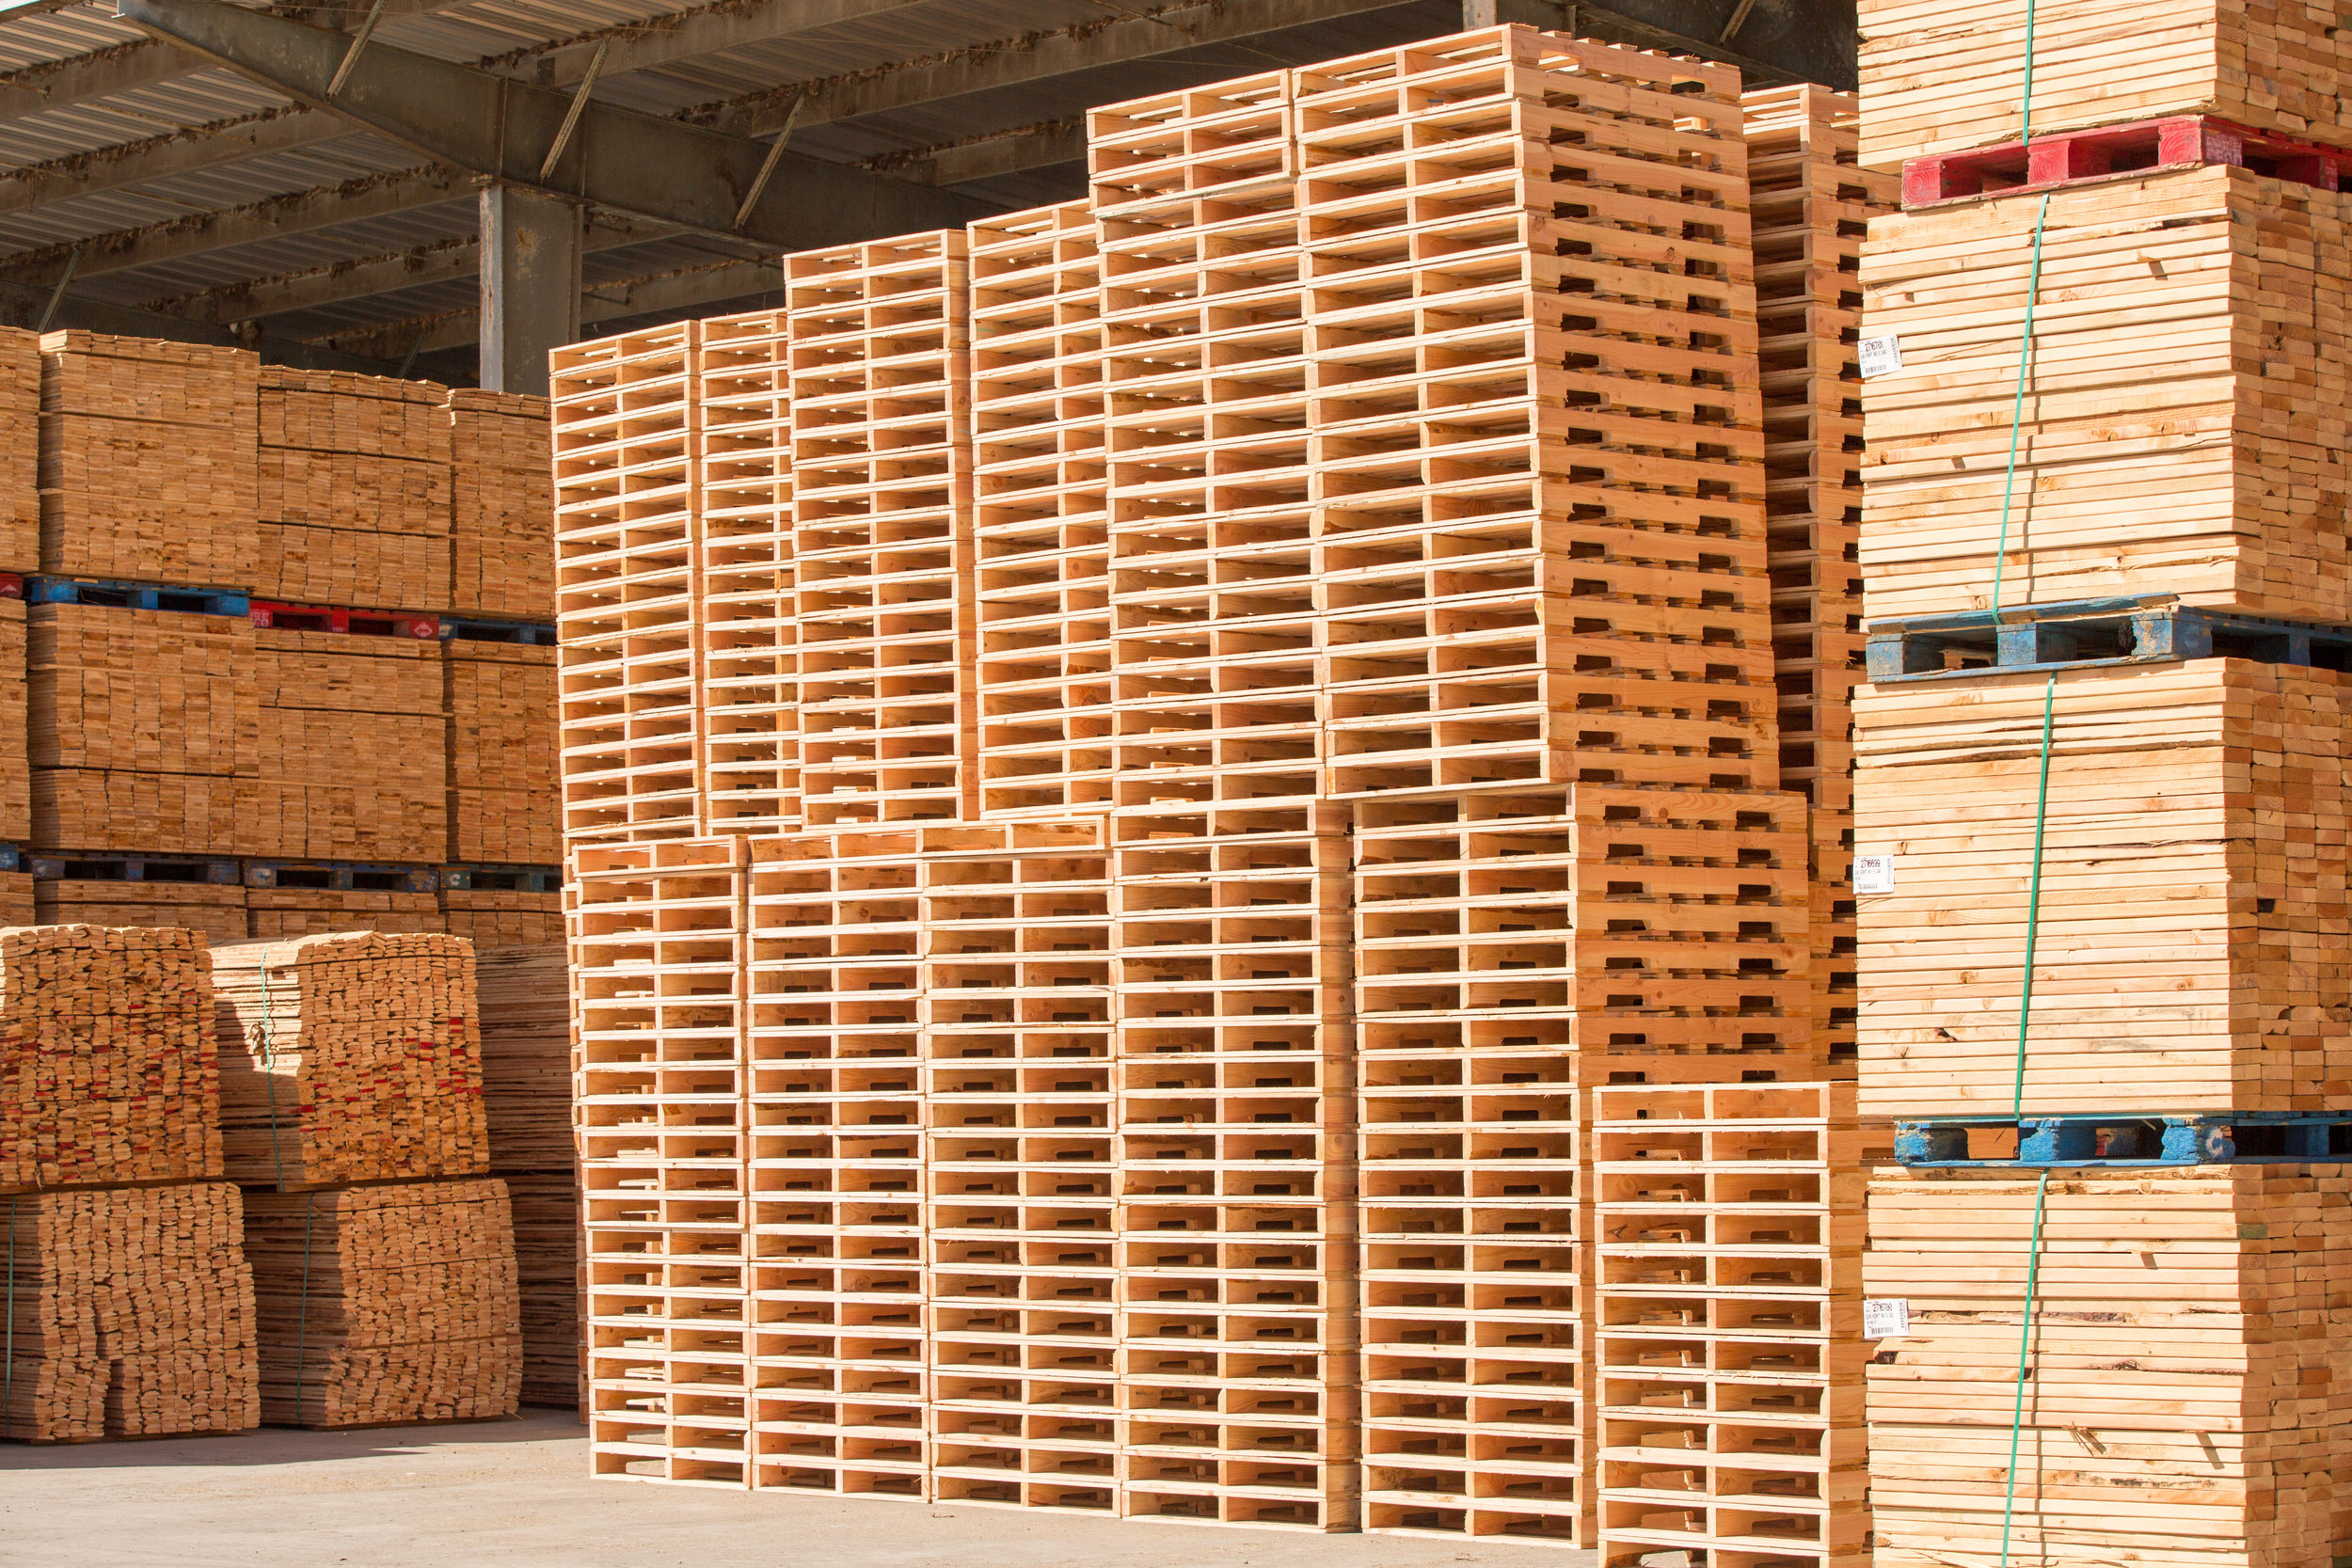 Copy of Turner Lumber Products and Business Photos 2019 (44).jpg